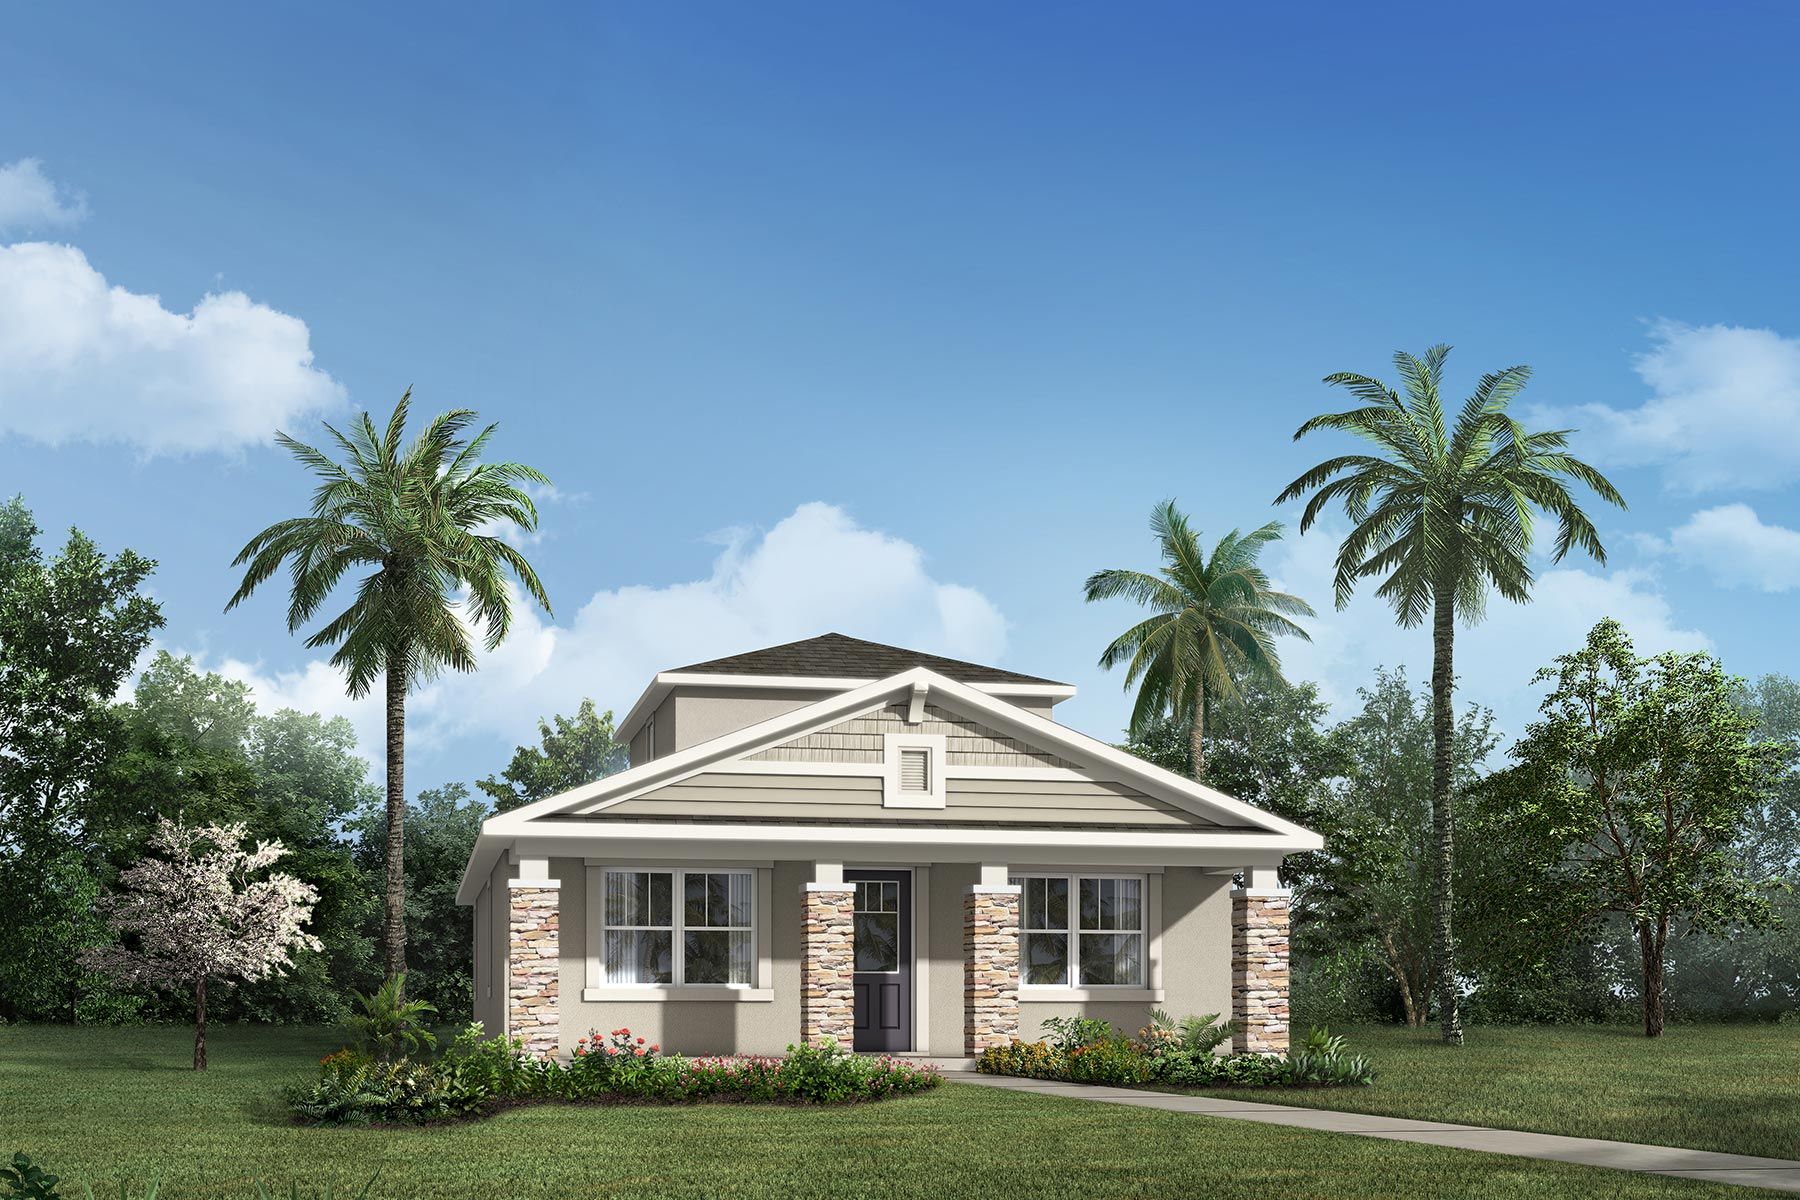 Bristol Plan Elevation Front at Tohoqua in Kissimmee Florida by Mattamy Homes